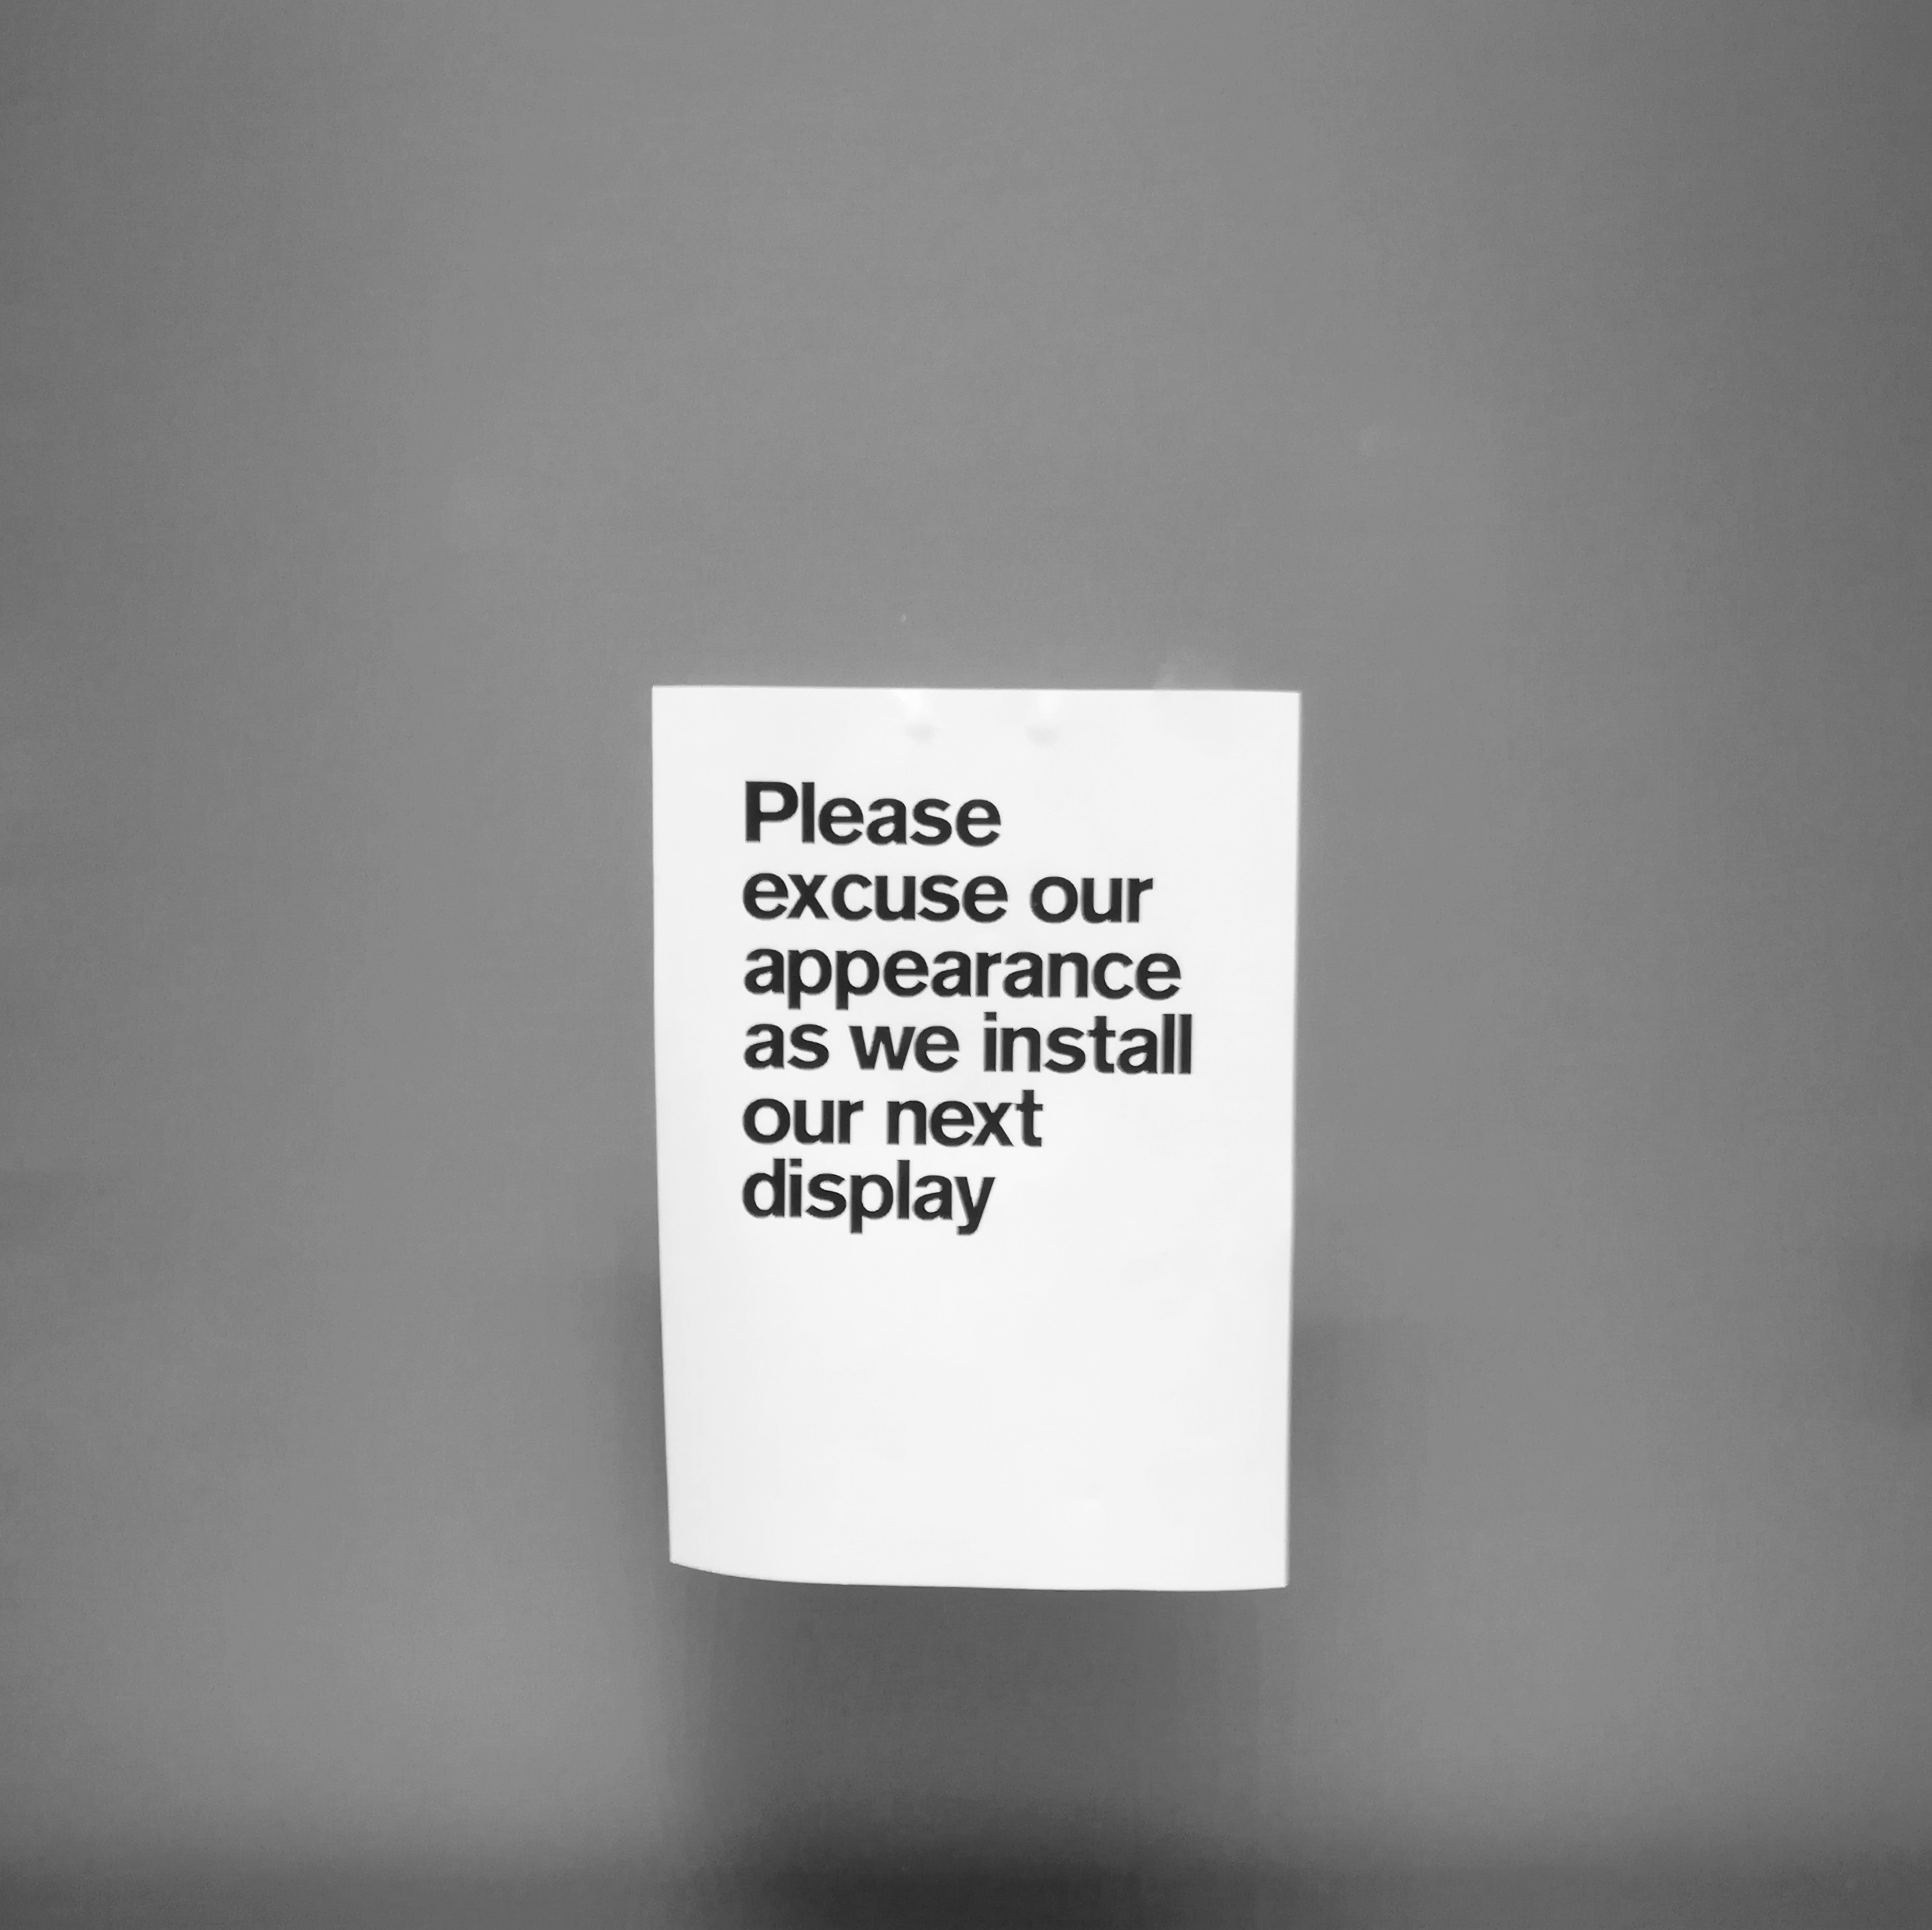 Please excuse our appearance as we install our next display